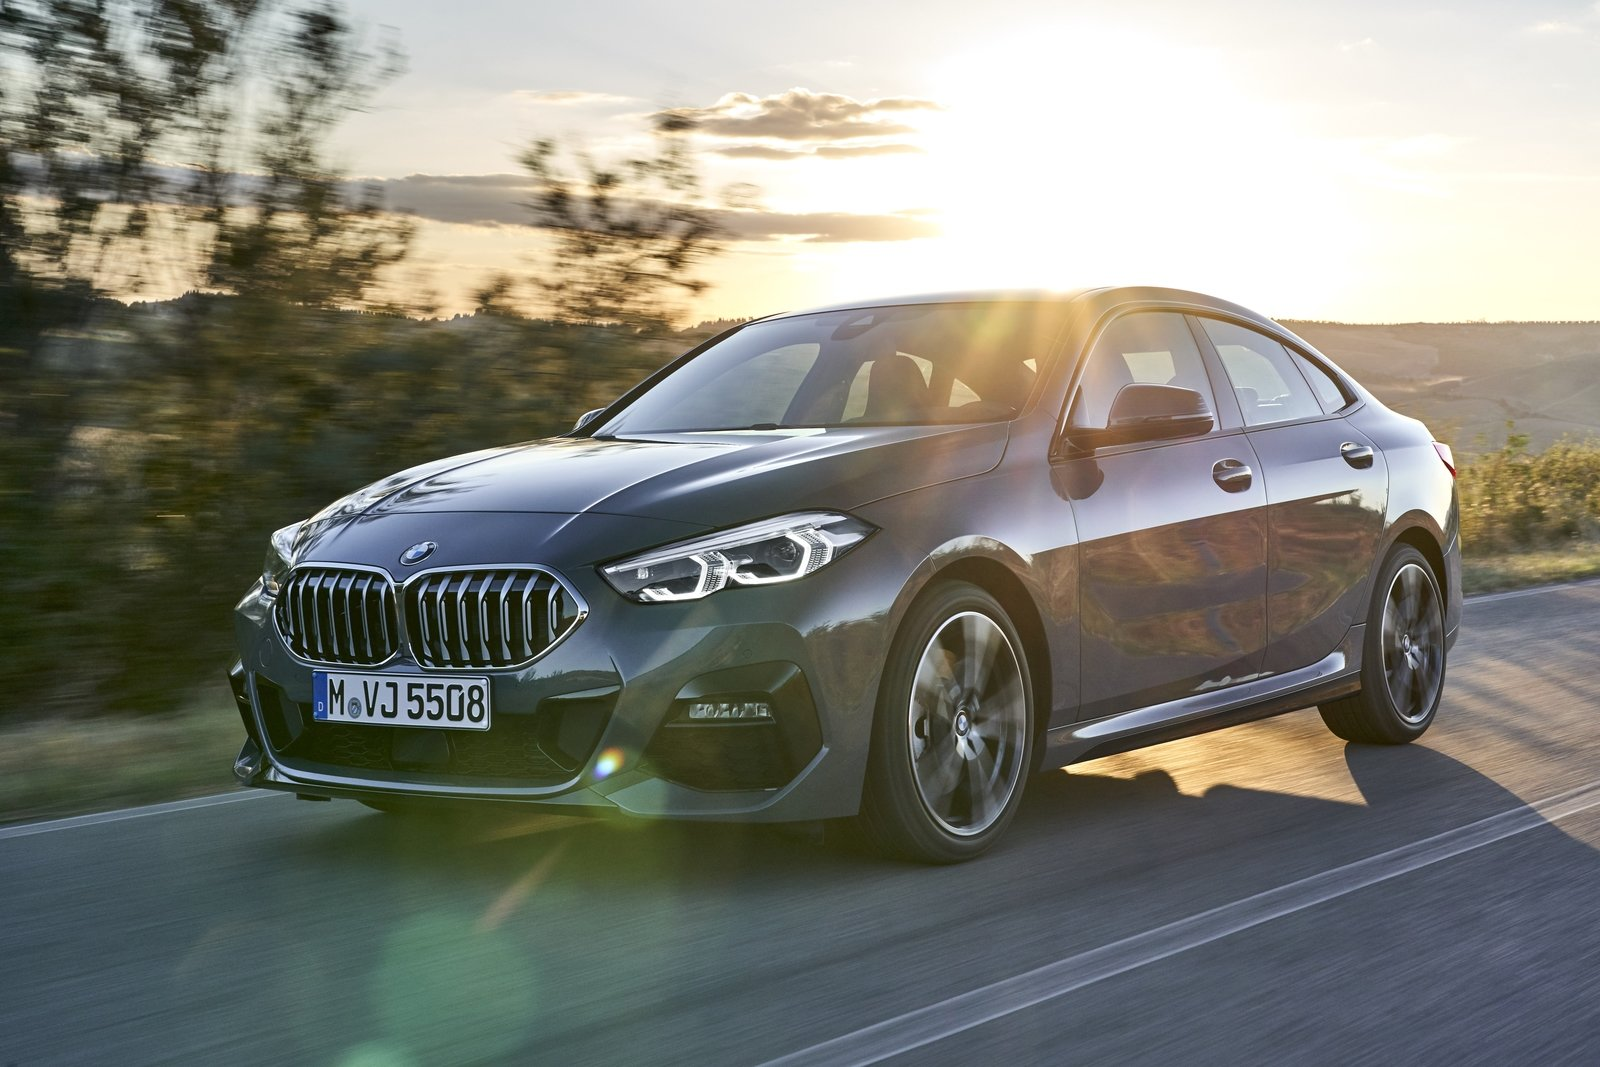 2020 BMW 2 Series Gran Coupe Debuts In 228i XDrive And M235i XDrive Flavors @ Top Speed